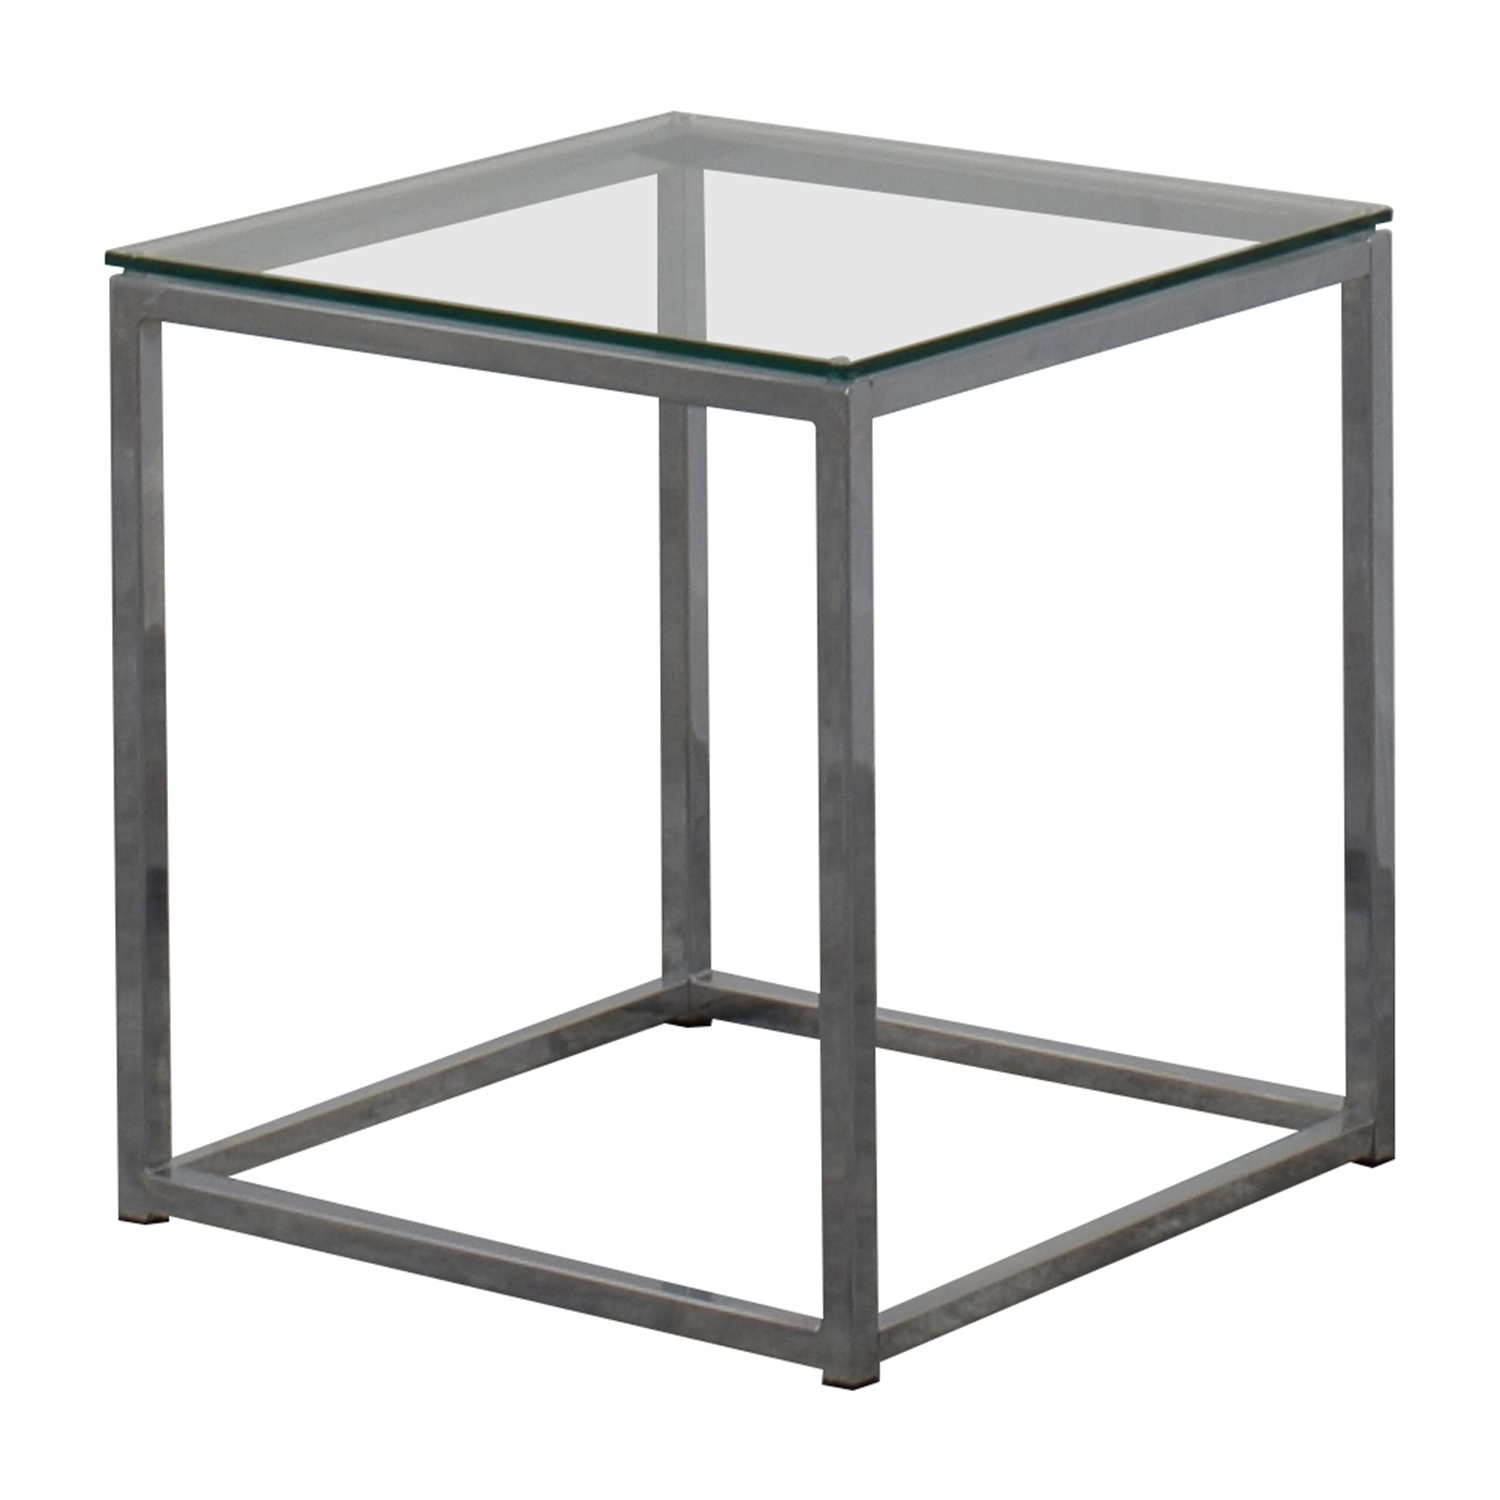 [%Fashionable Smart Glass Top Coffee Tables Throughout 80% Off – Cb2 Cb2 Smart Glass Top Side Table / Tables|80% Off – Cb2 Cb2 Smart Glass Top Side Table / Tables Pertaining To Popular Smart Glass Top Coffee Tables%] (View 1 of 20)